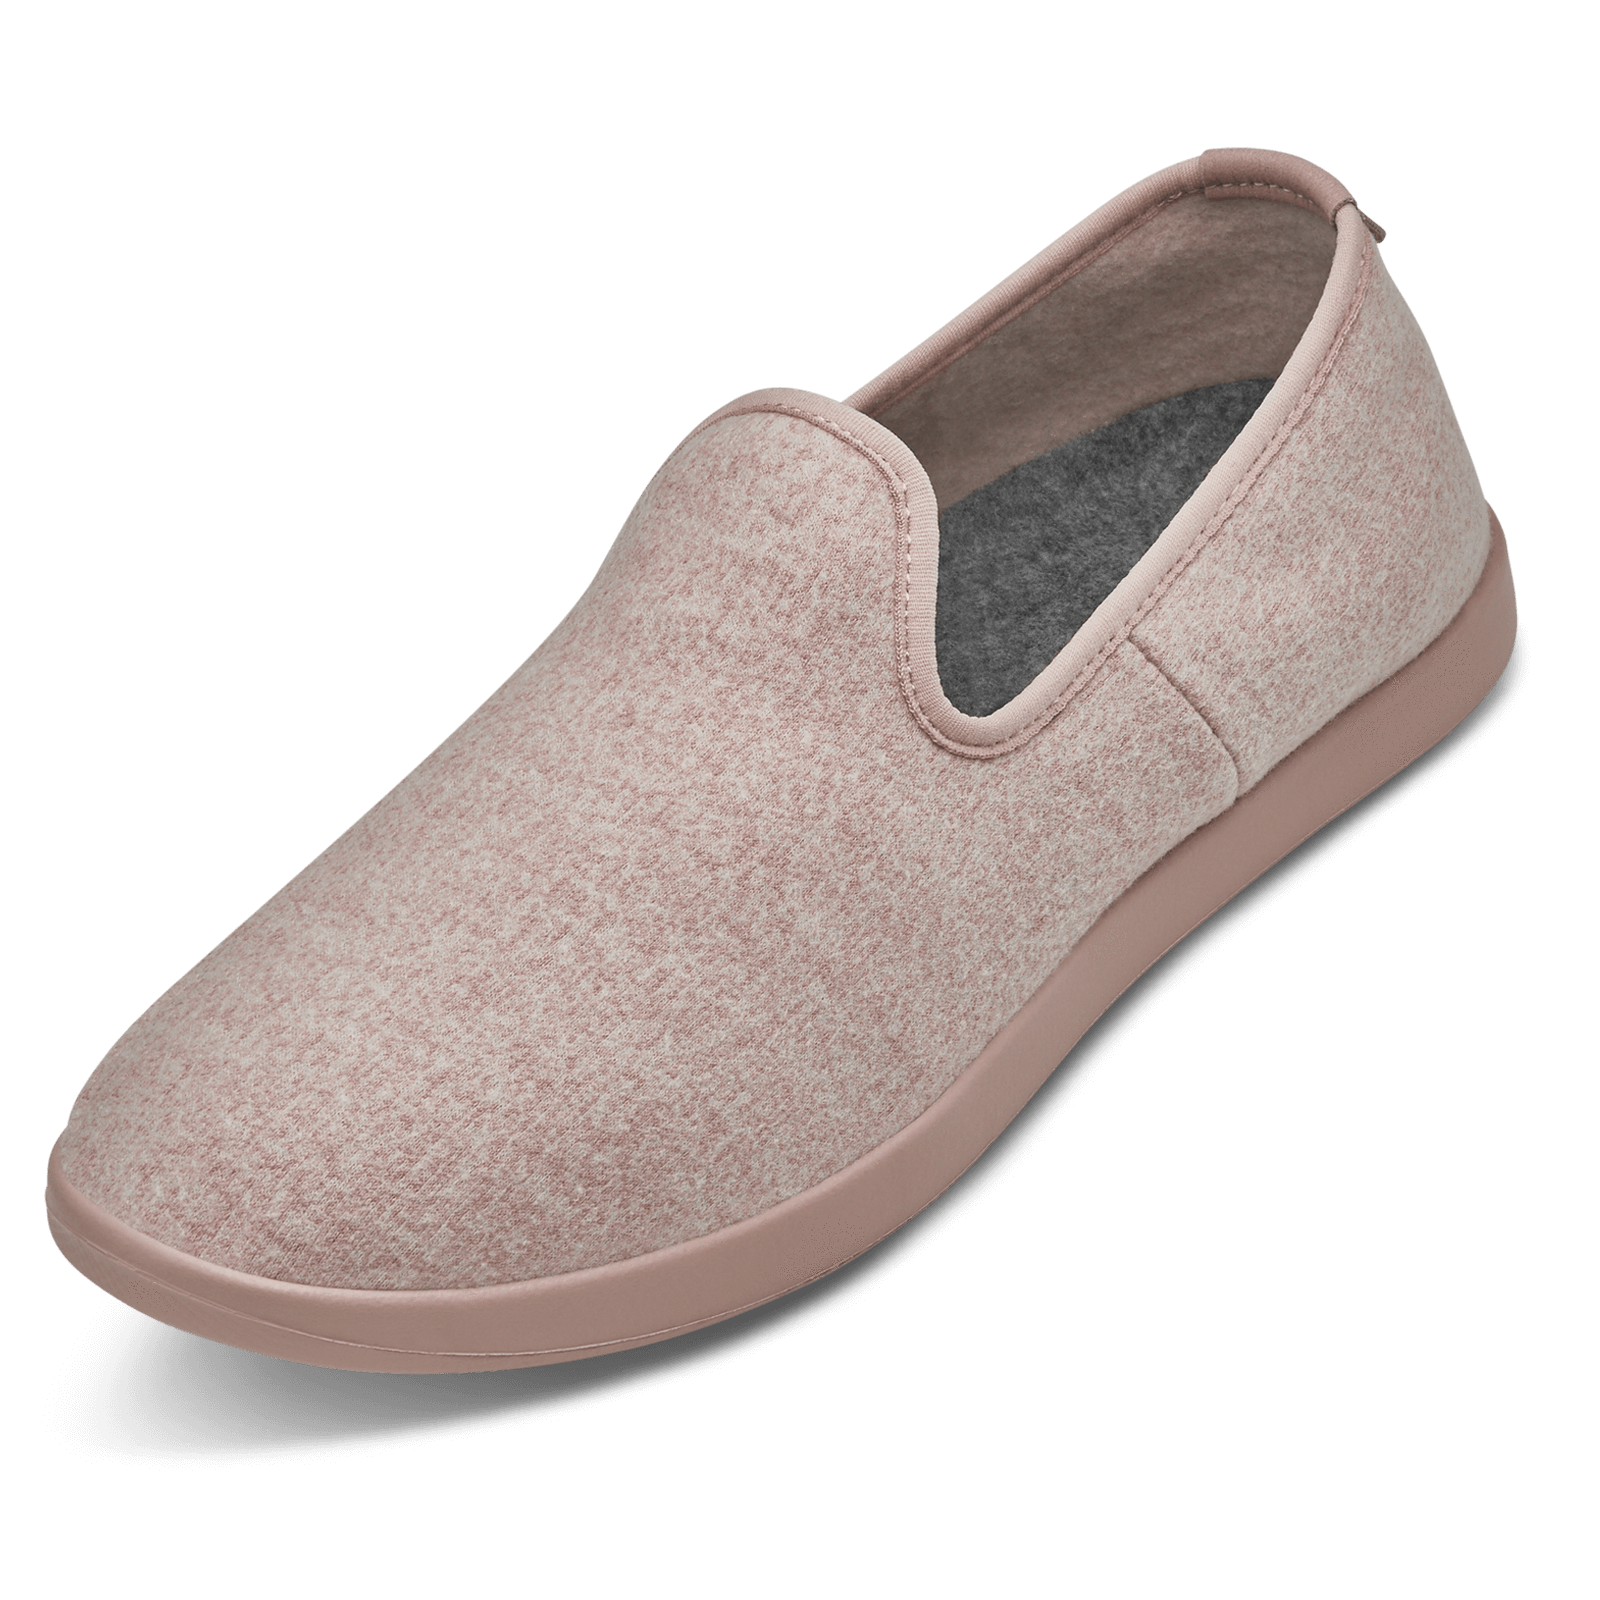 805d523ada5ebb Allbirds Women s Wool Loungers - Tuke Dusk (dusk Sole)